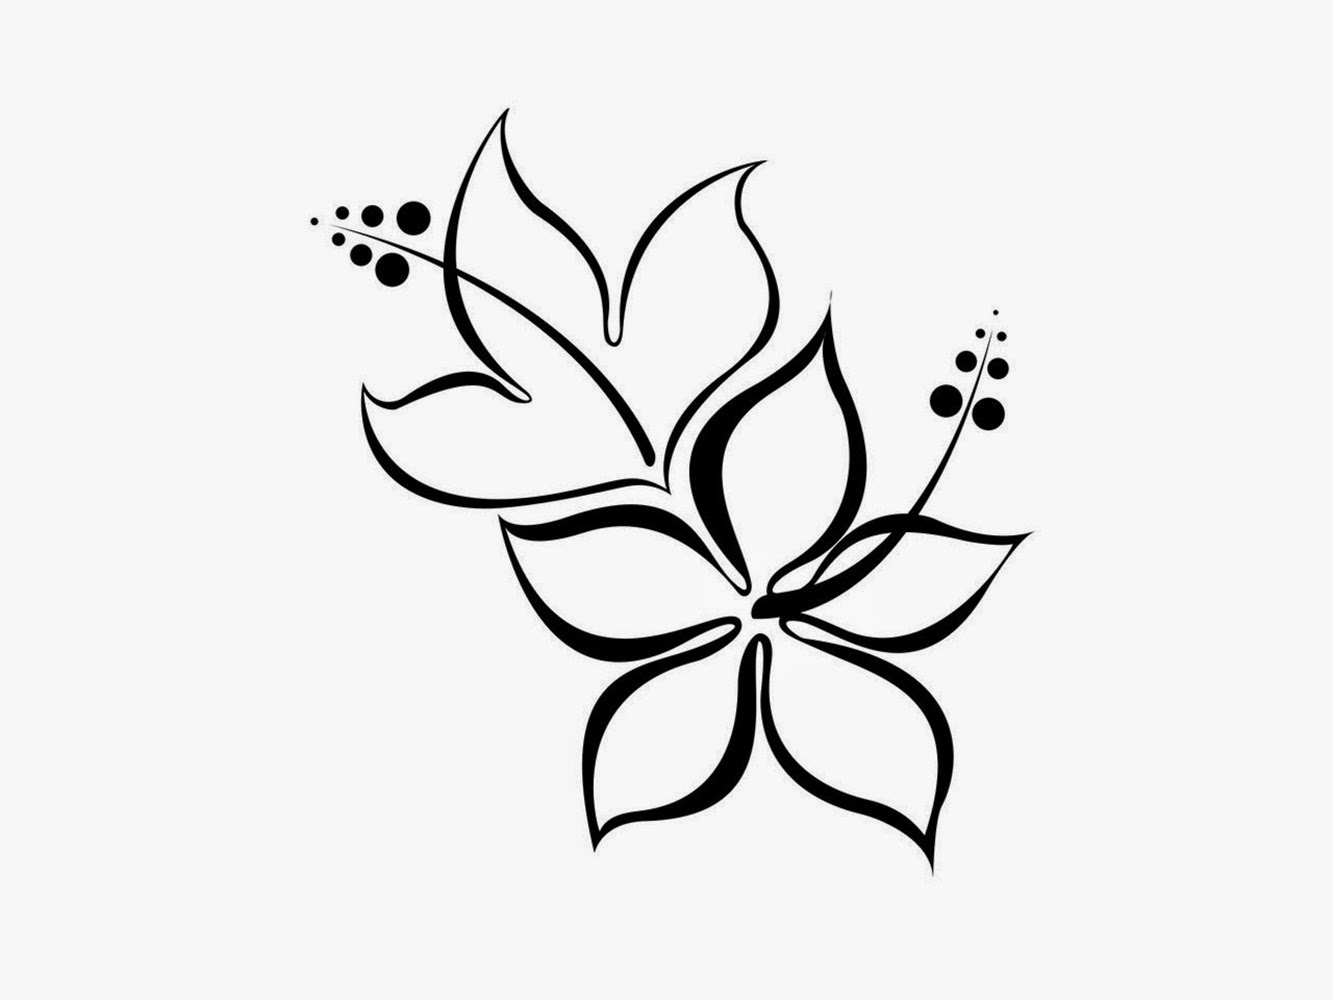 1333x1000 Gallery Black And White Flower Drawings Pics,